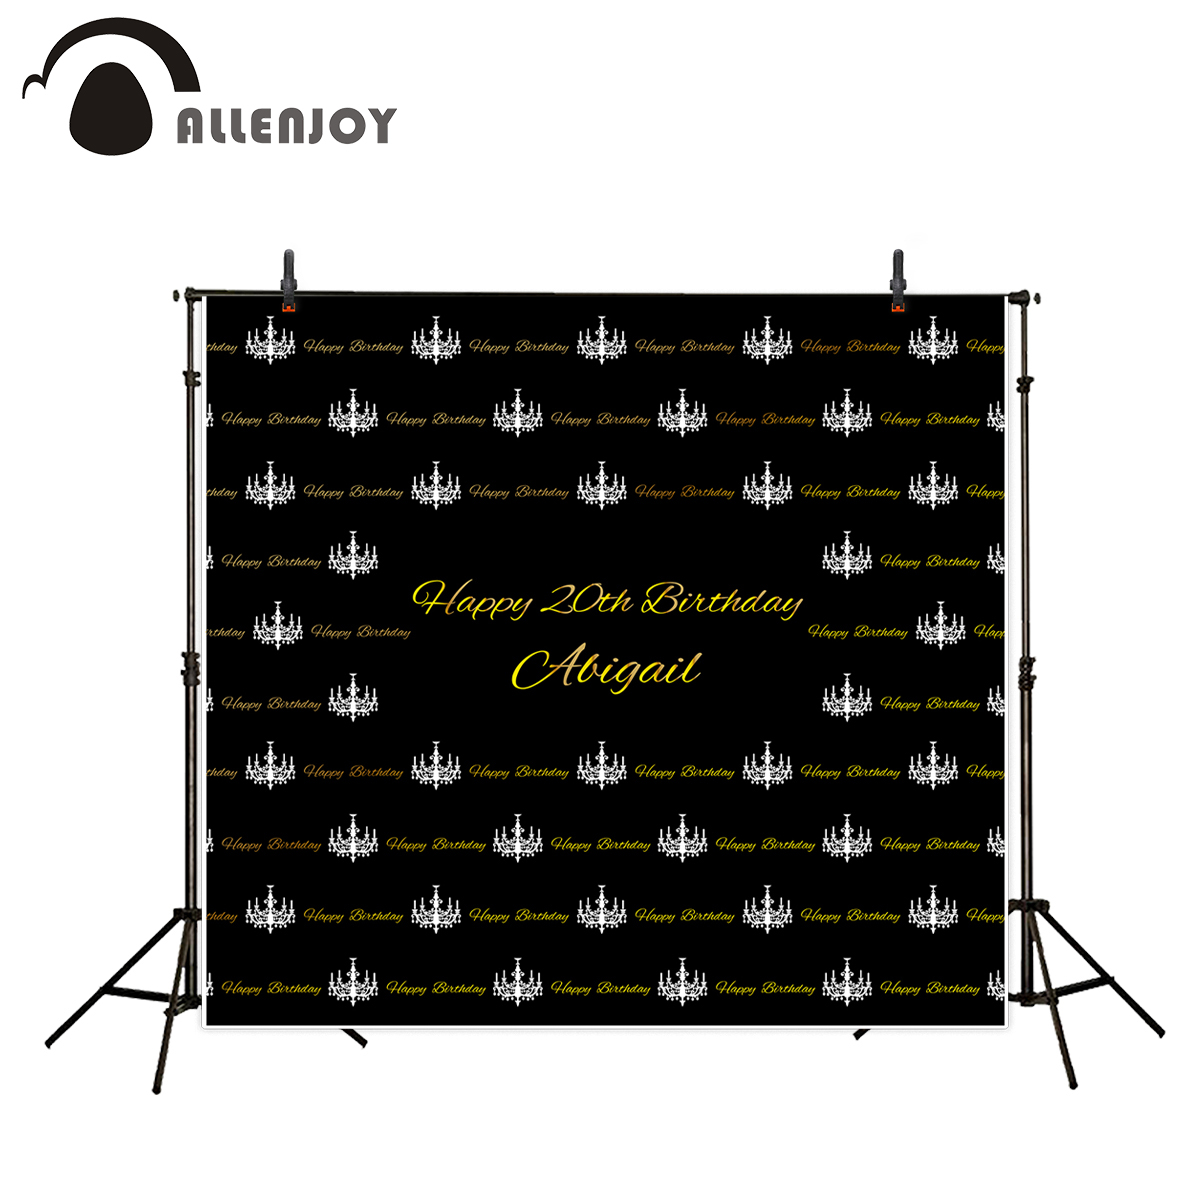 Allenjoy vinyl backdrops for photography Black Crown Candle Gold Custom Birthday sweet celebration photography backdrops vinyl custom photography backdrops prop graffiti